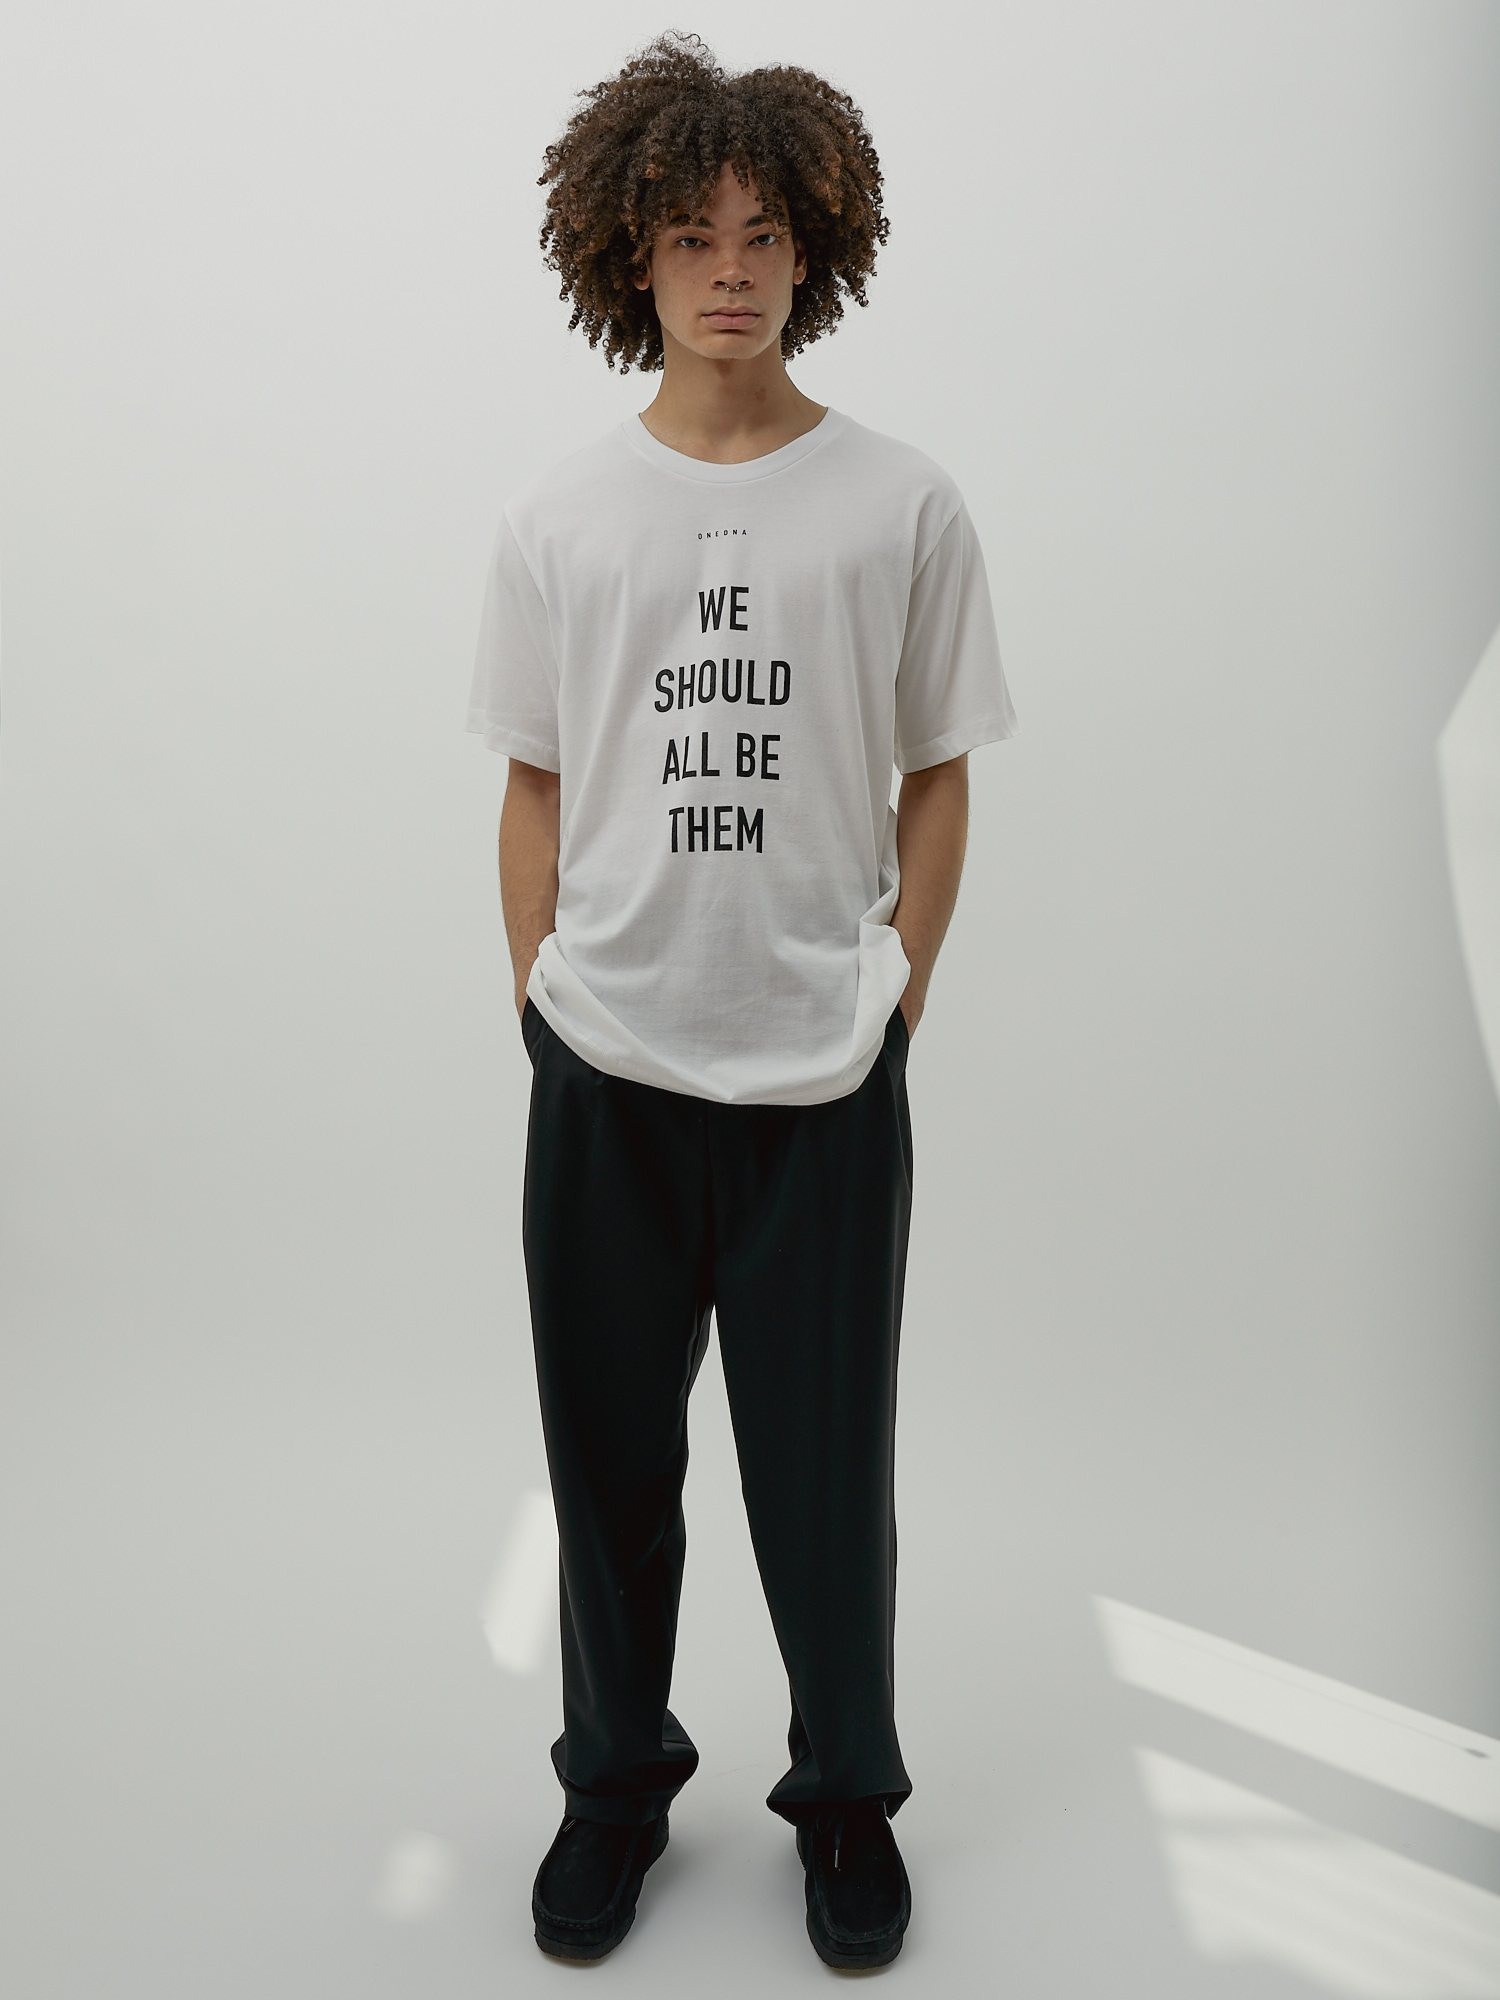 Shop We Should All Be Them T-shirt